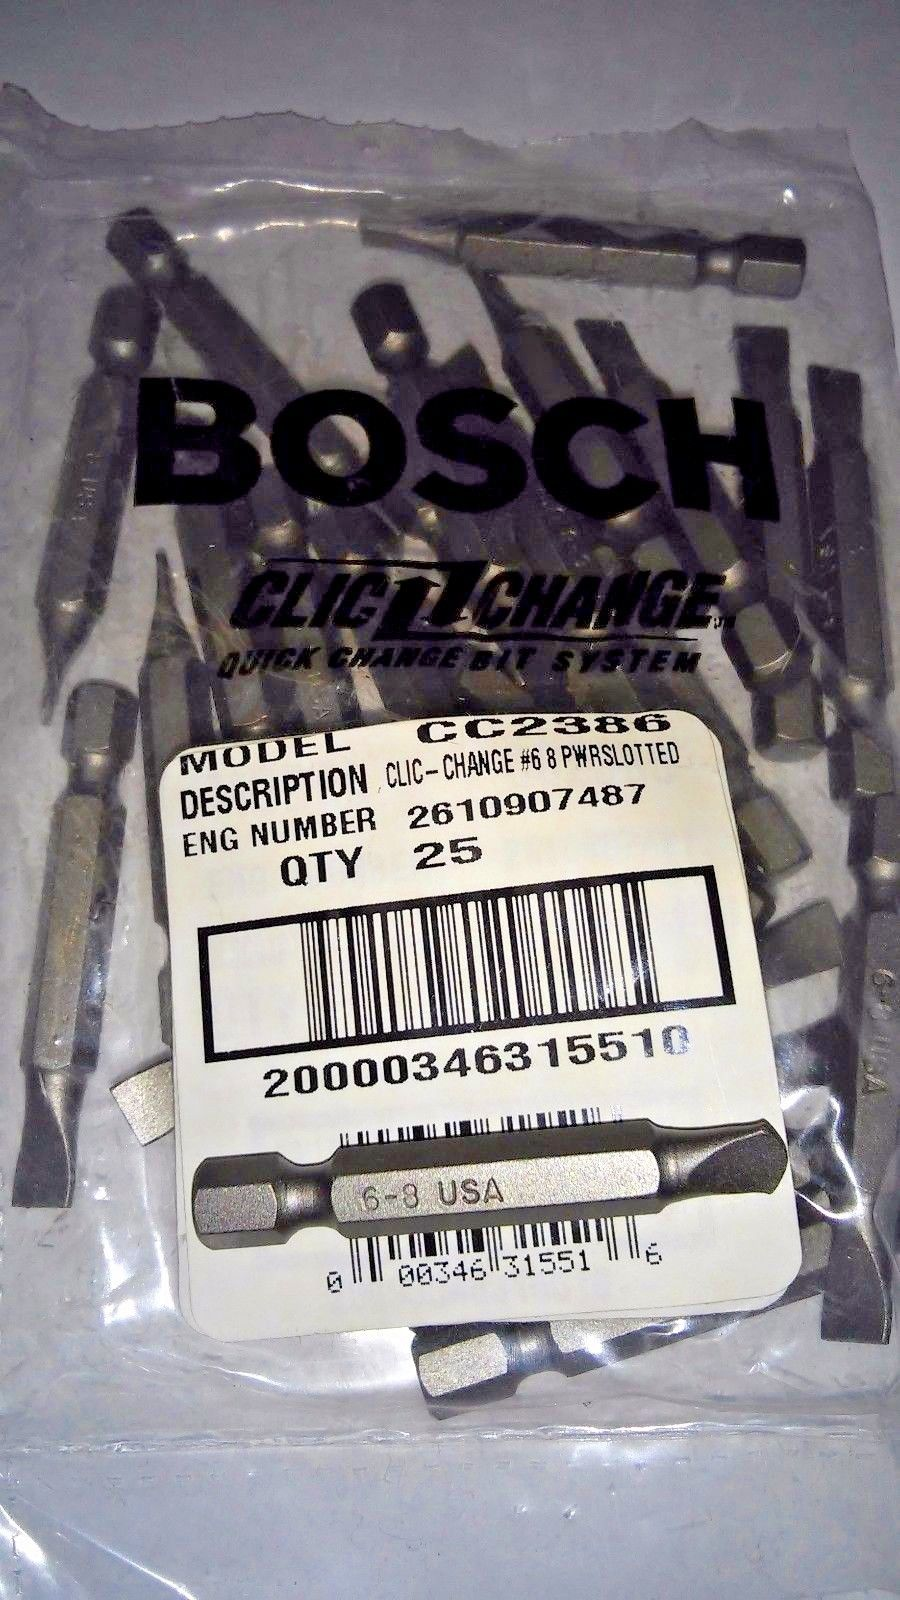 Bosch CC2386 #6 -8 Slotted Power Screw Bit Tips 25pcs. USA